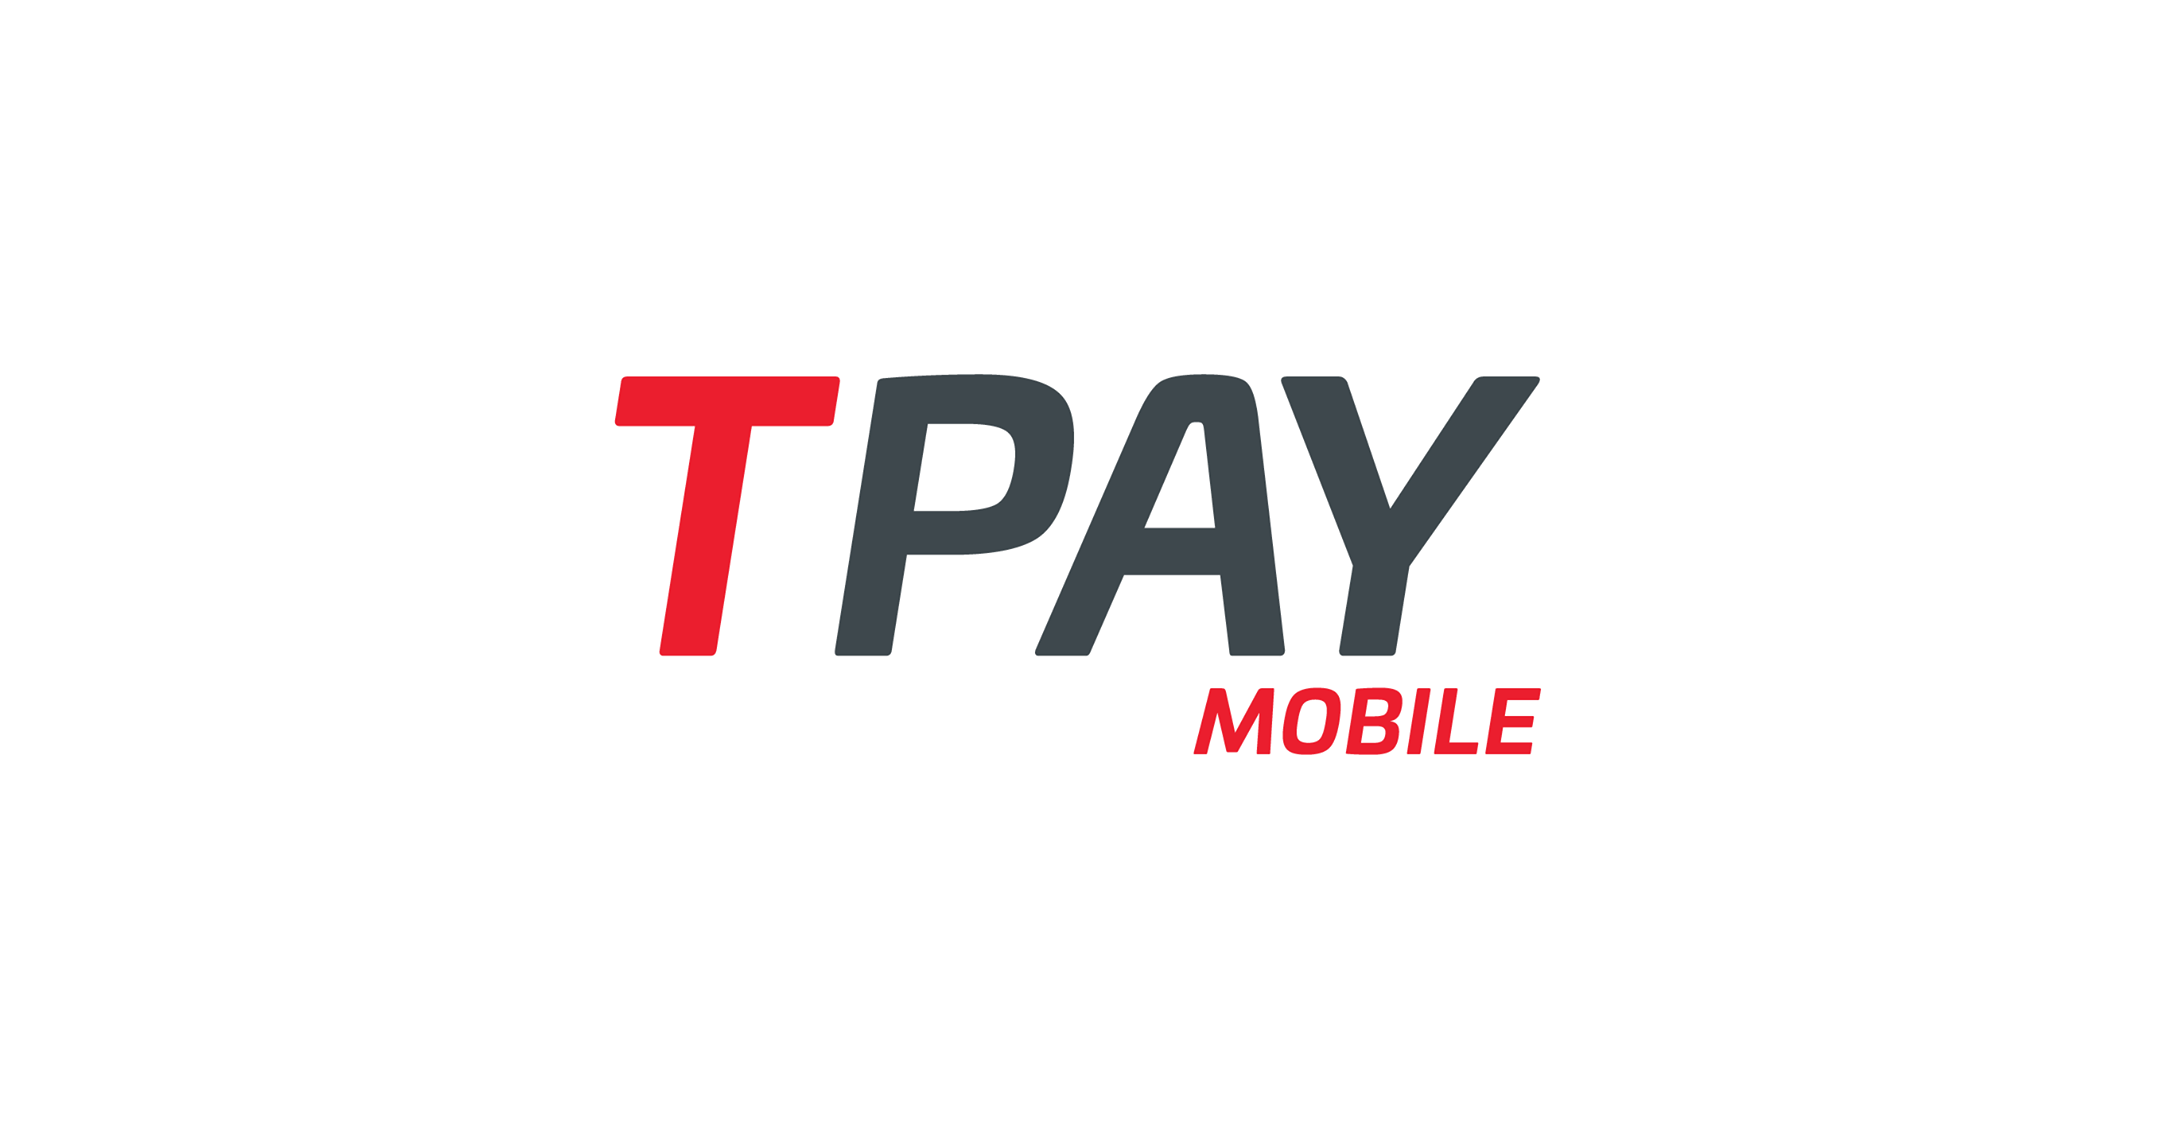 TPAY MOBILE Appoints New Chief Operating Officer